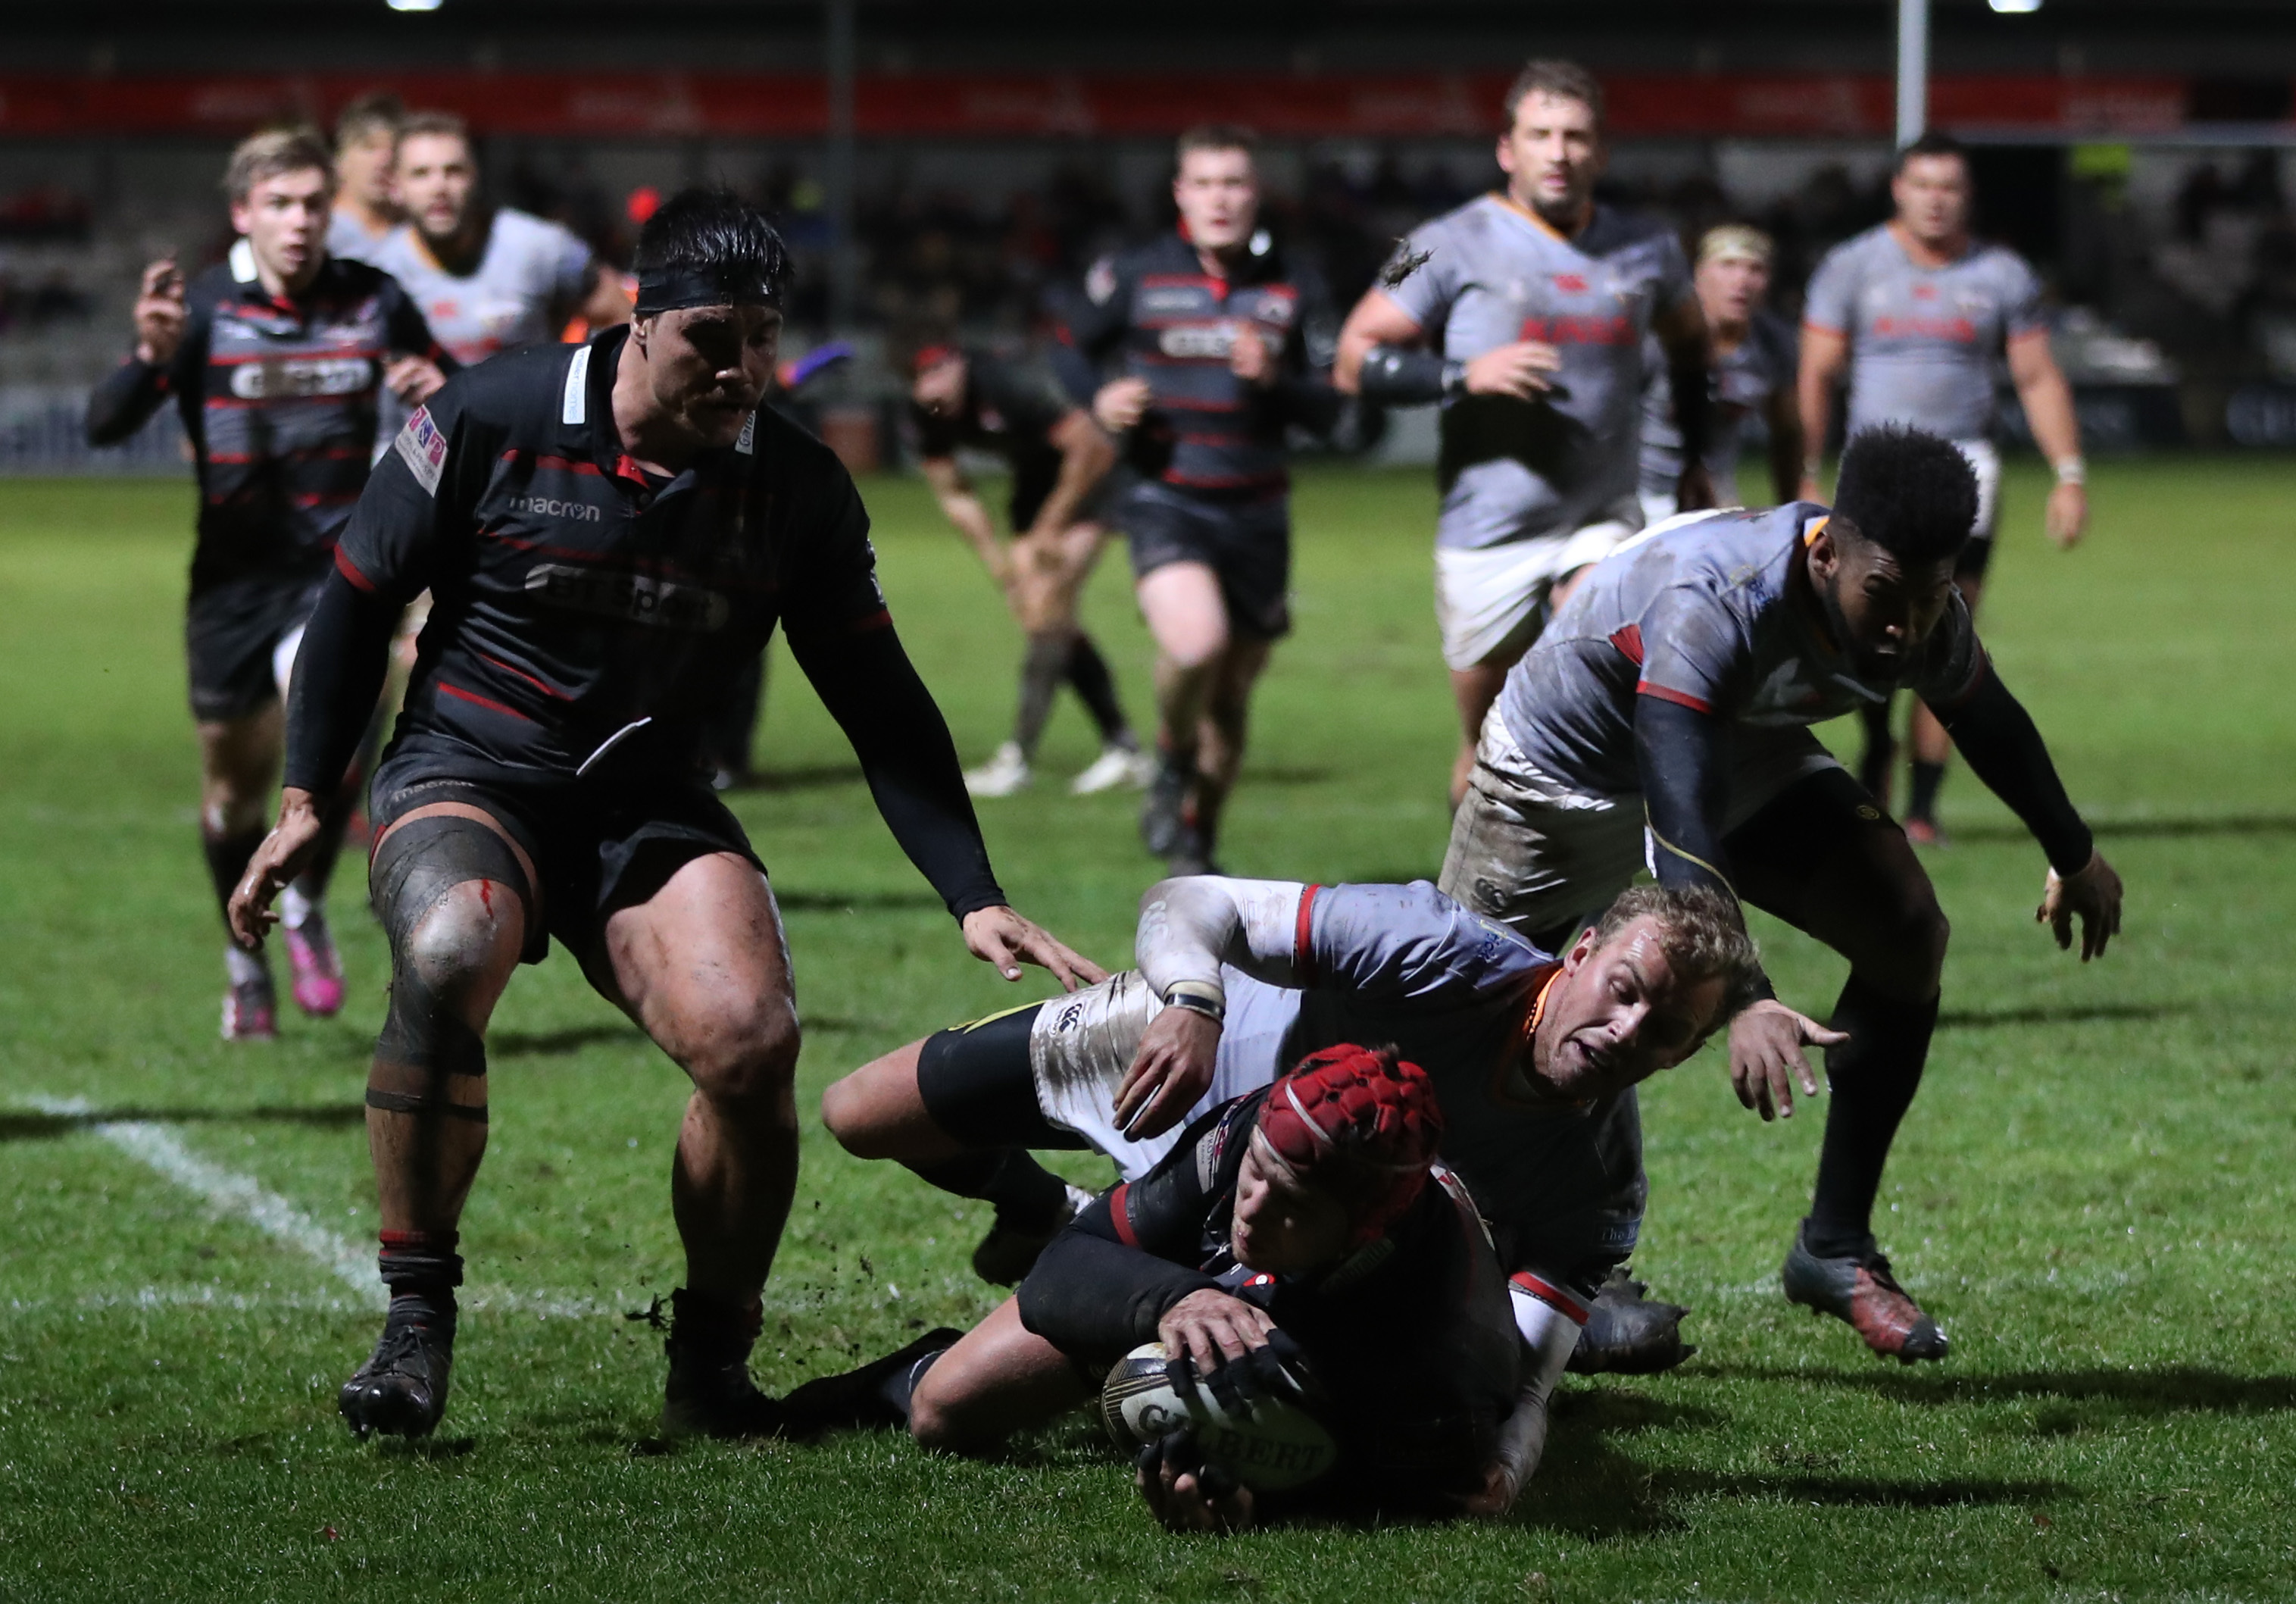 Grant Gilchrist scores Edinburgh's first try against the Kings at Myreside.